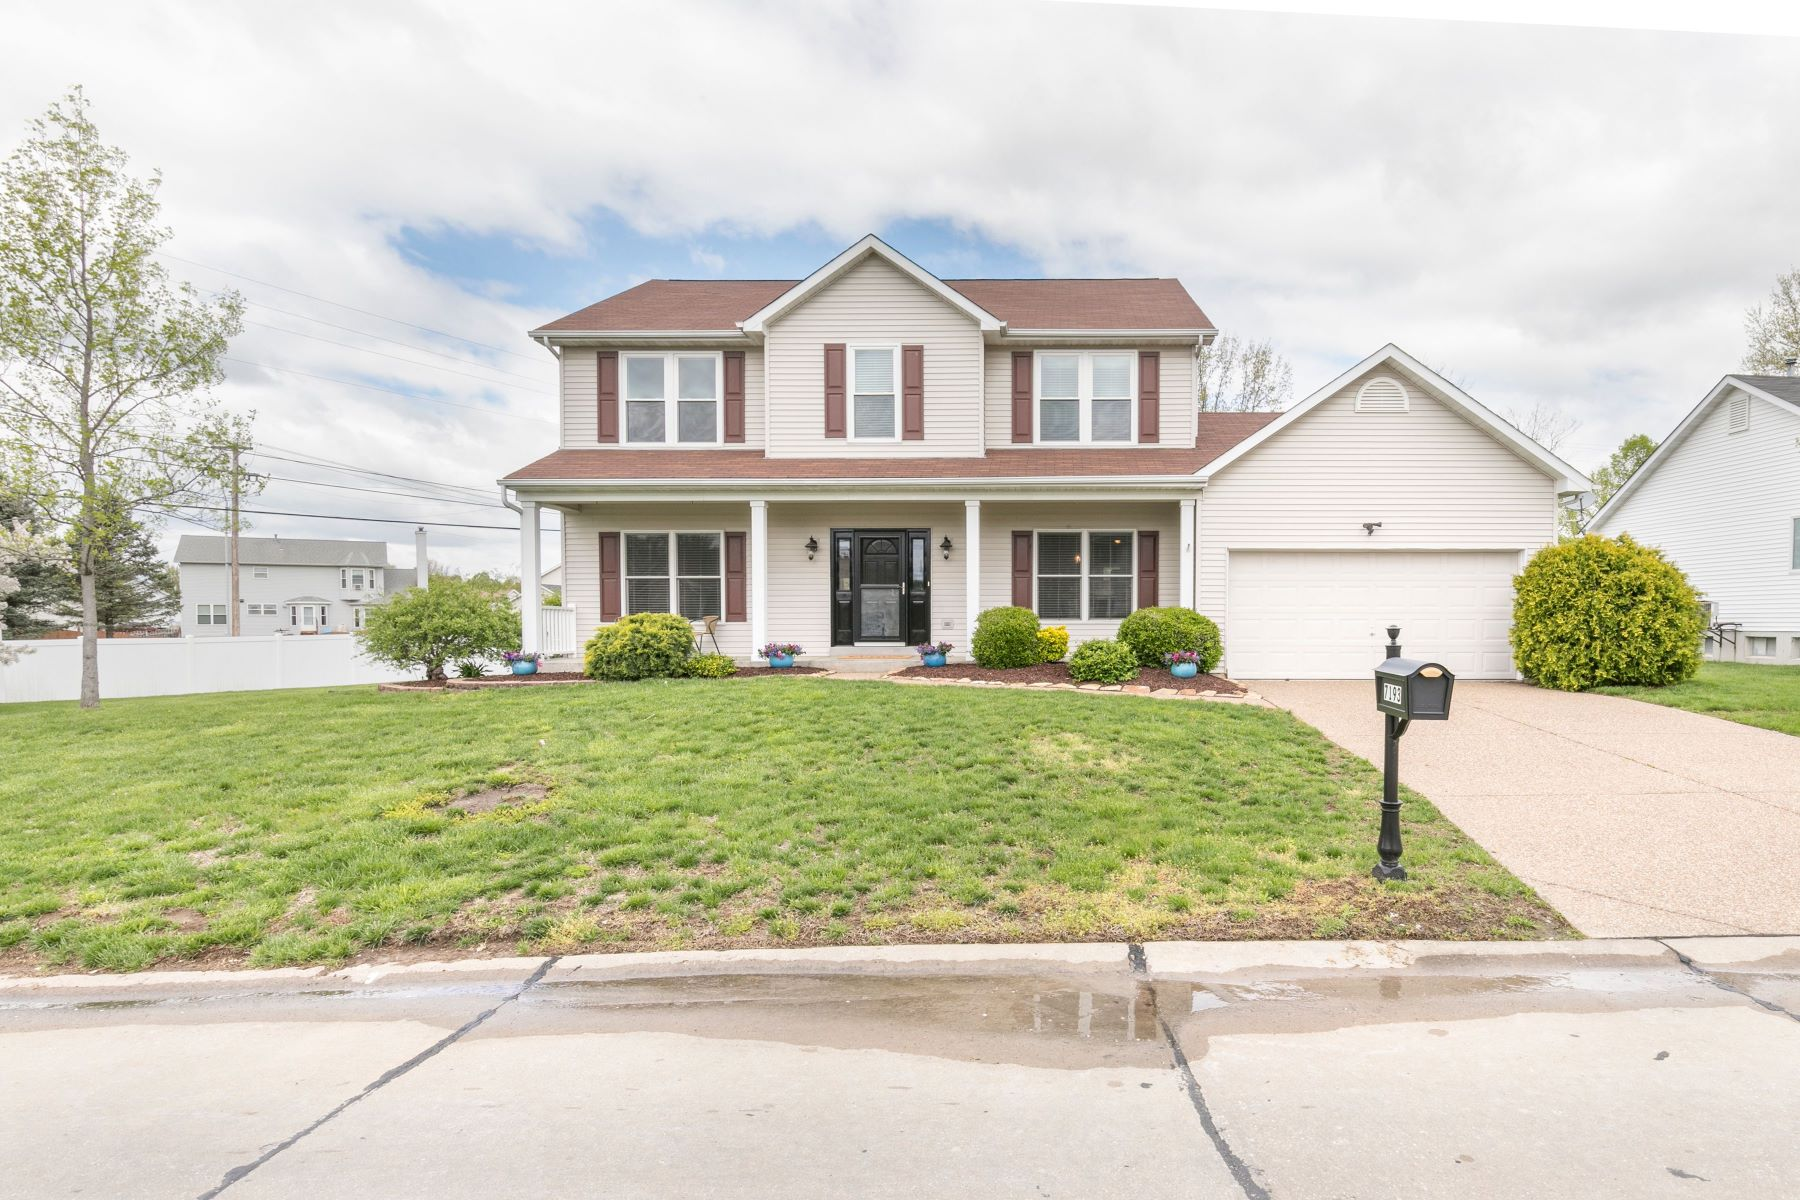 Single Family Home for Sale at Villages at Dardenne 7193 Dardenne Prairie Drive O Fallon, Missouri 63368 United States